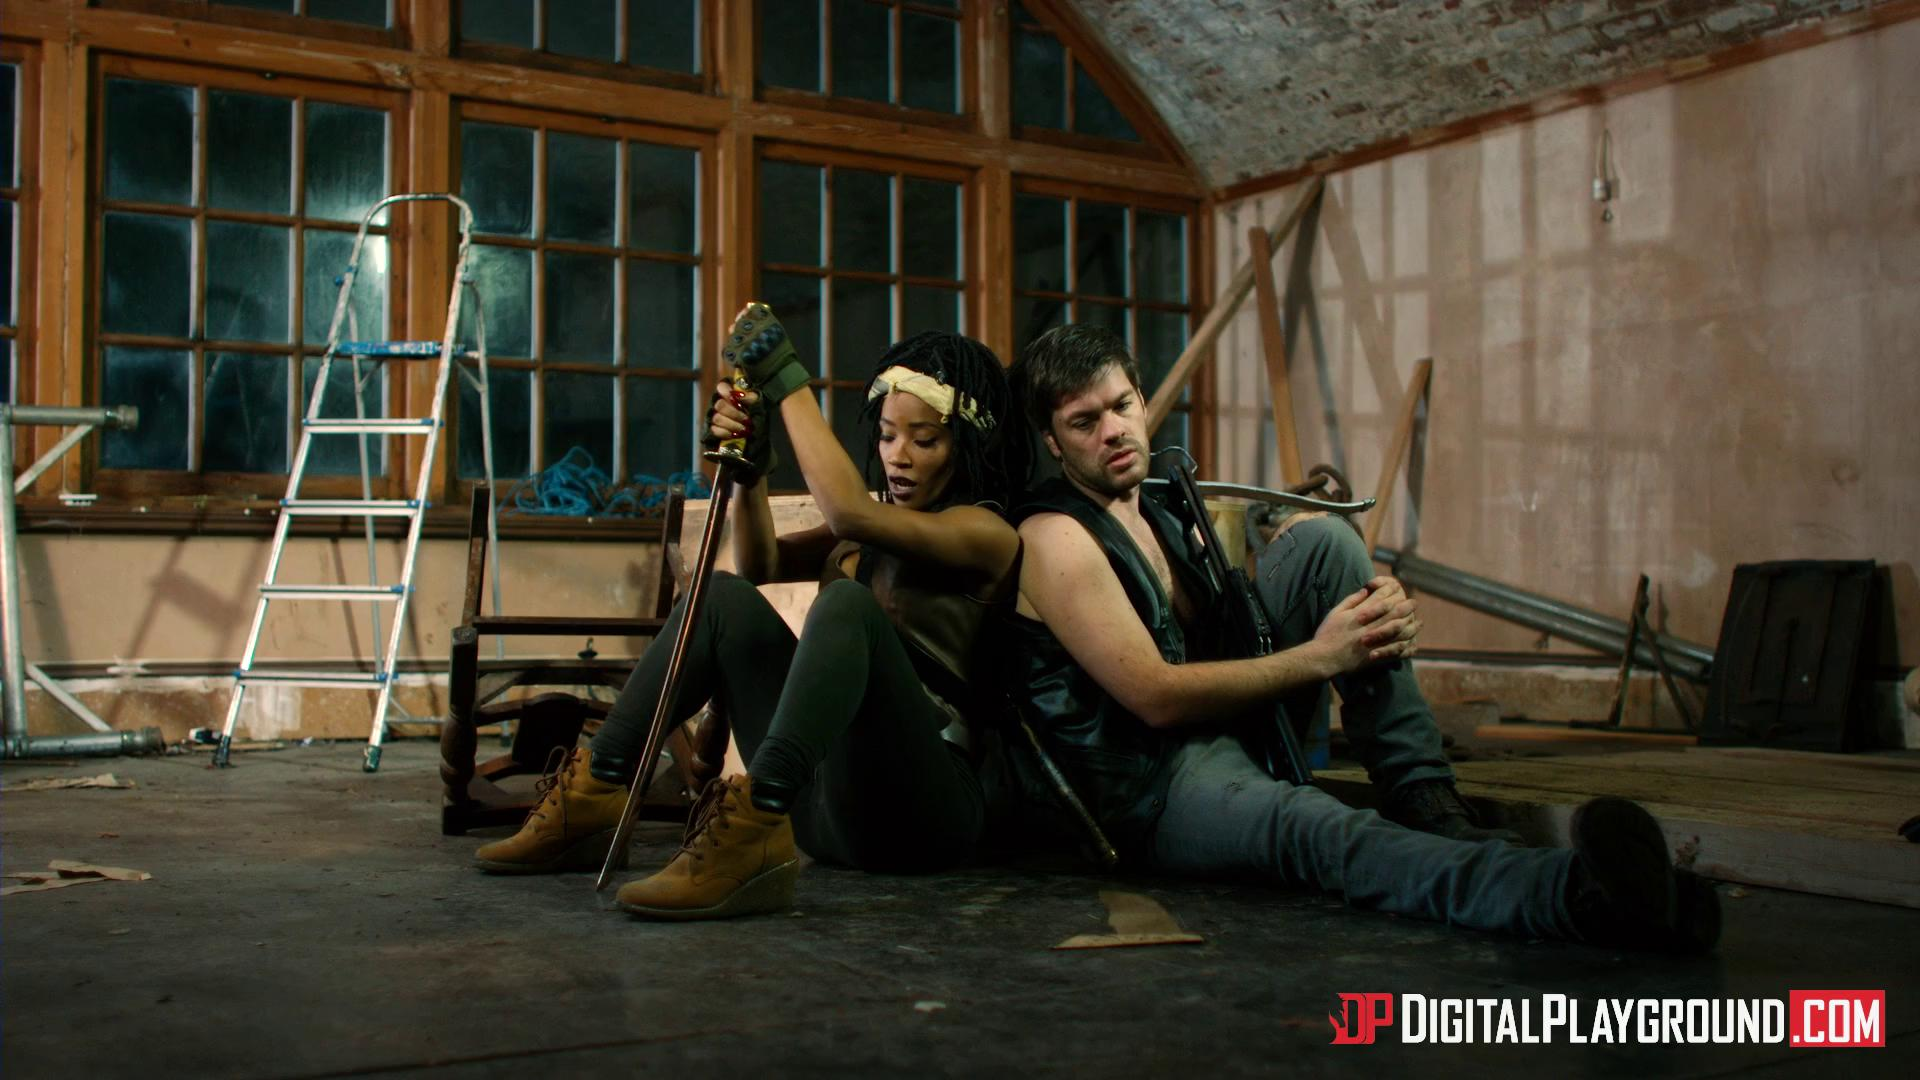 DigitalPlayground – Kiki Minaj The Walking Dead A XXX Parody